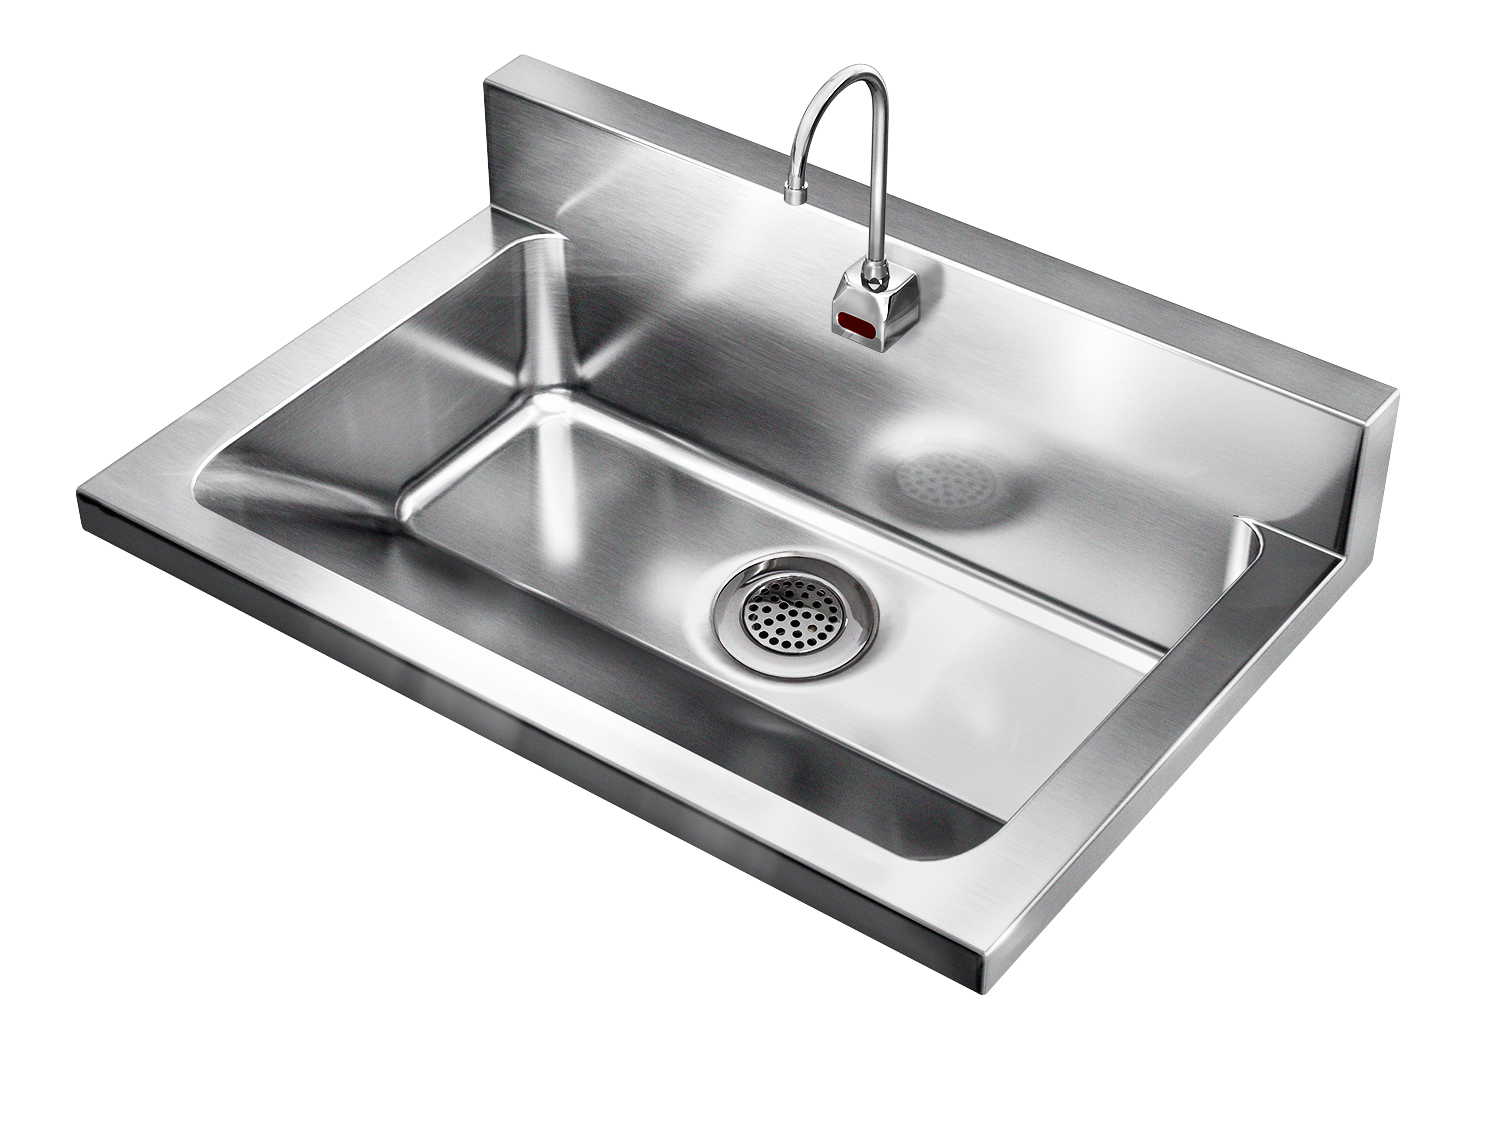 Photo of ADA compliant sink